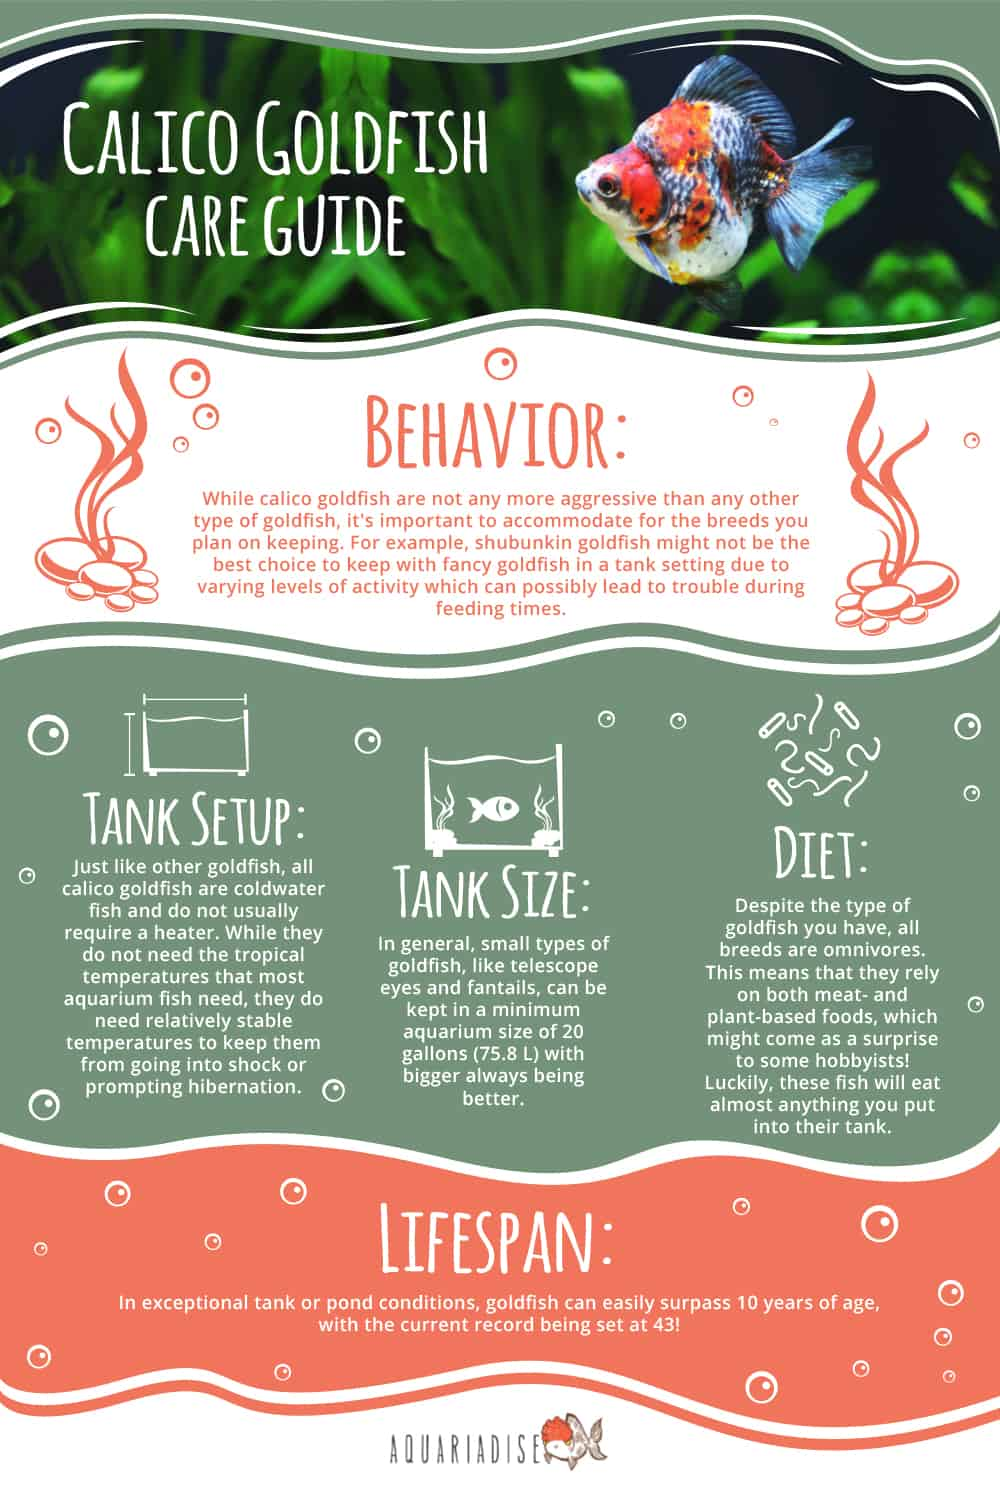 Calico Goldfish Care Guide Infographic